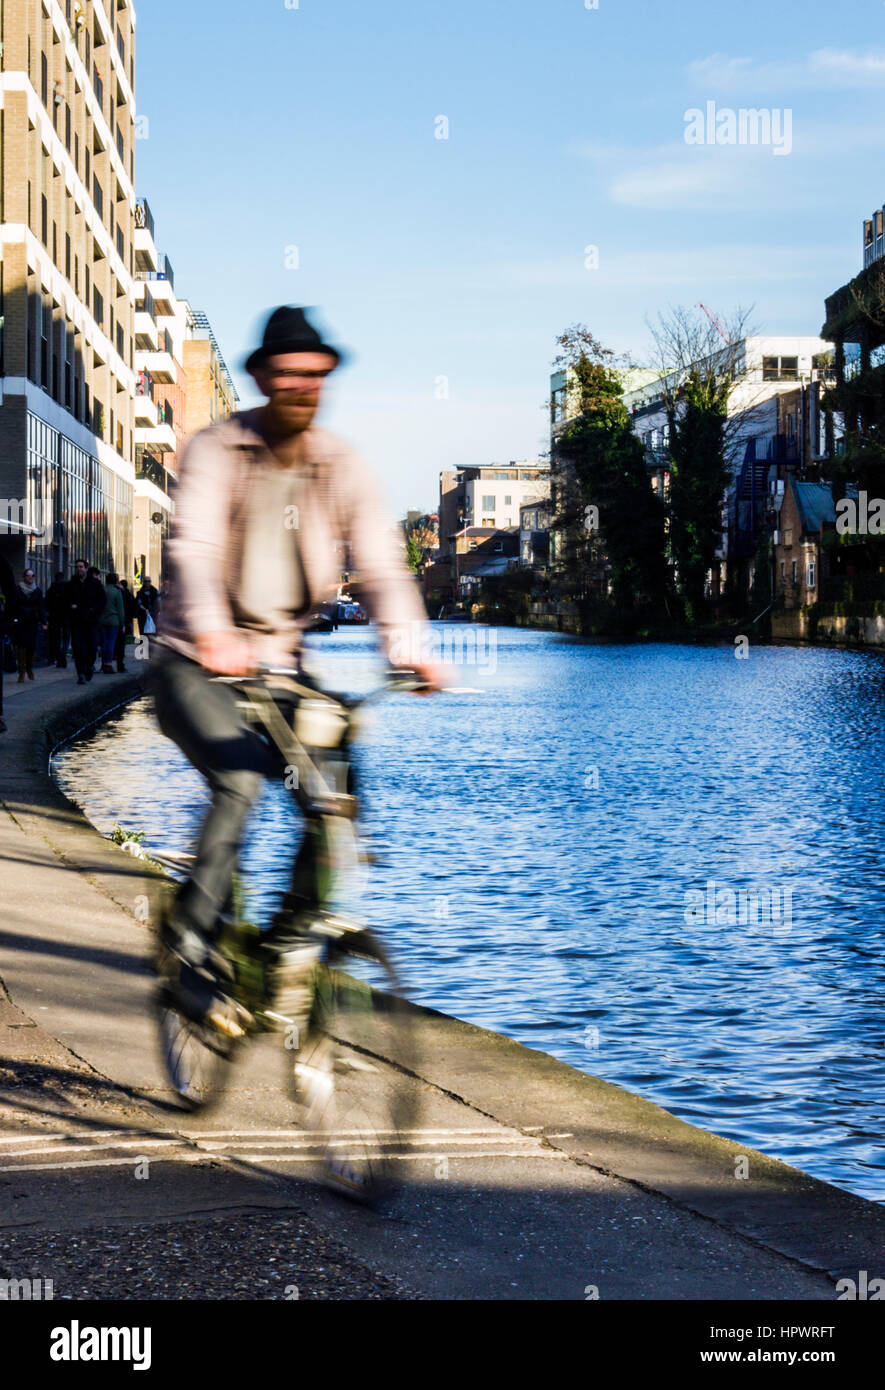 Bearded man wearing a hat and riding a bicycle along the towpath of Regent's Canal, London, UK, blurred with - Stock Image